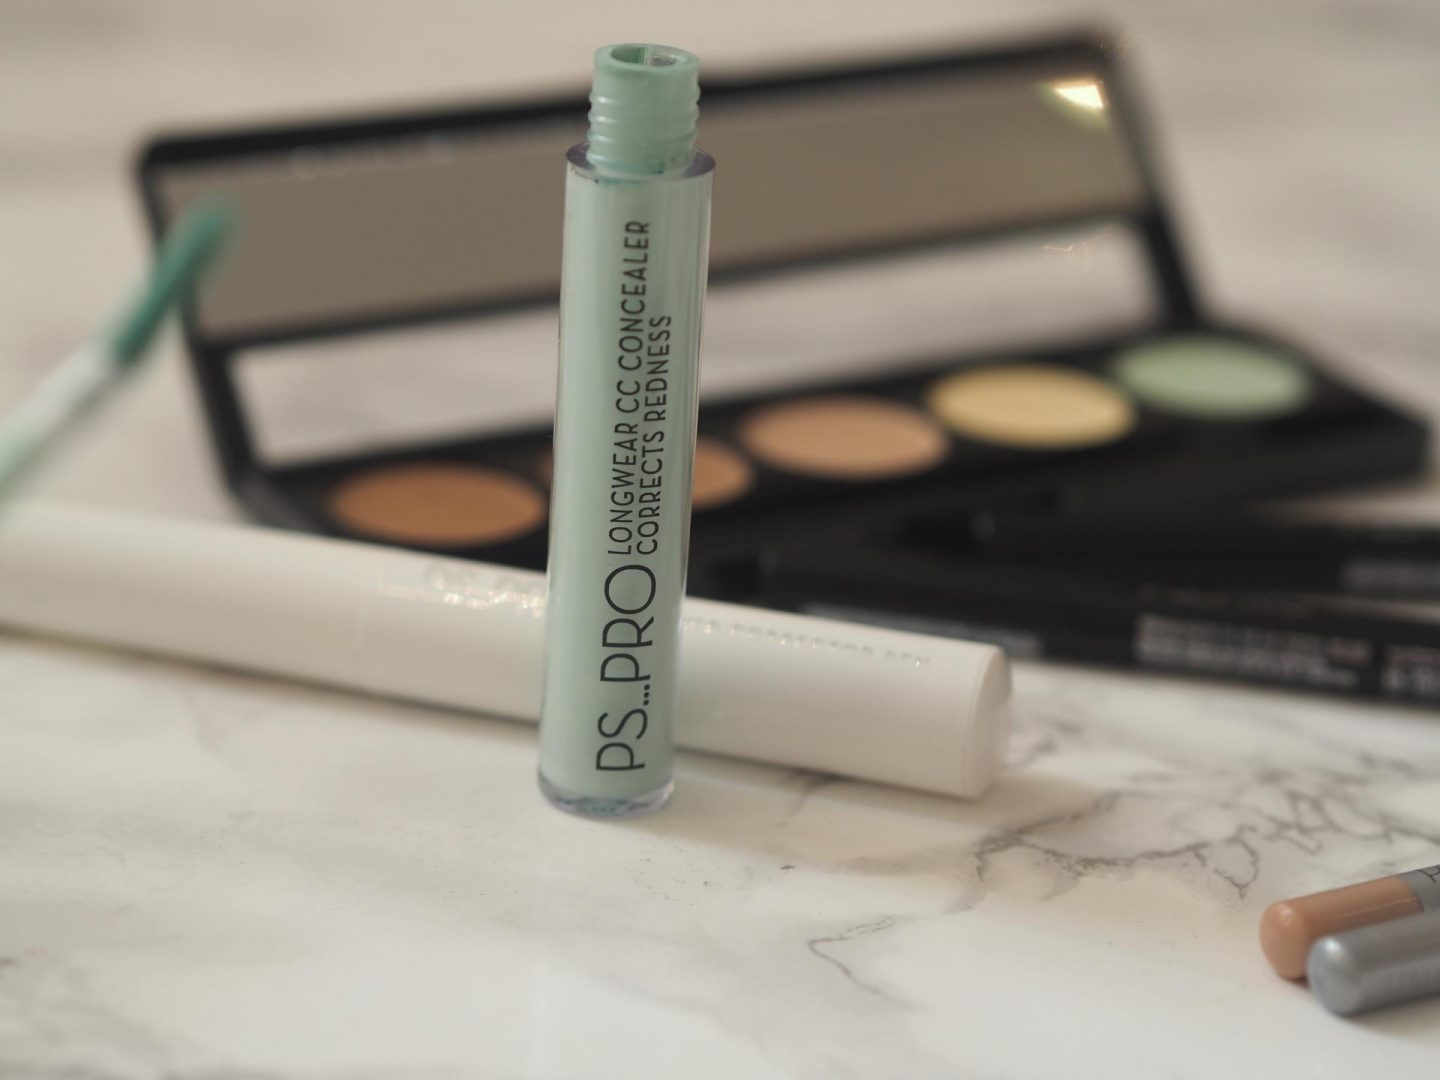 Primark PS Pro - Products: Longwear CC Concealer Corrects Redness